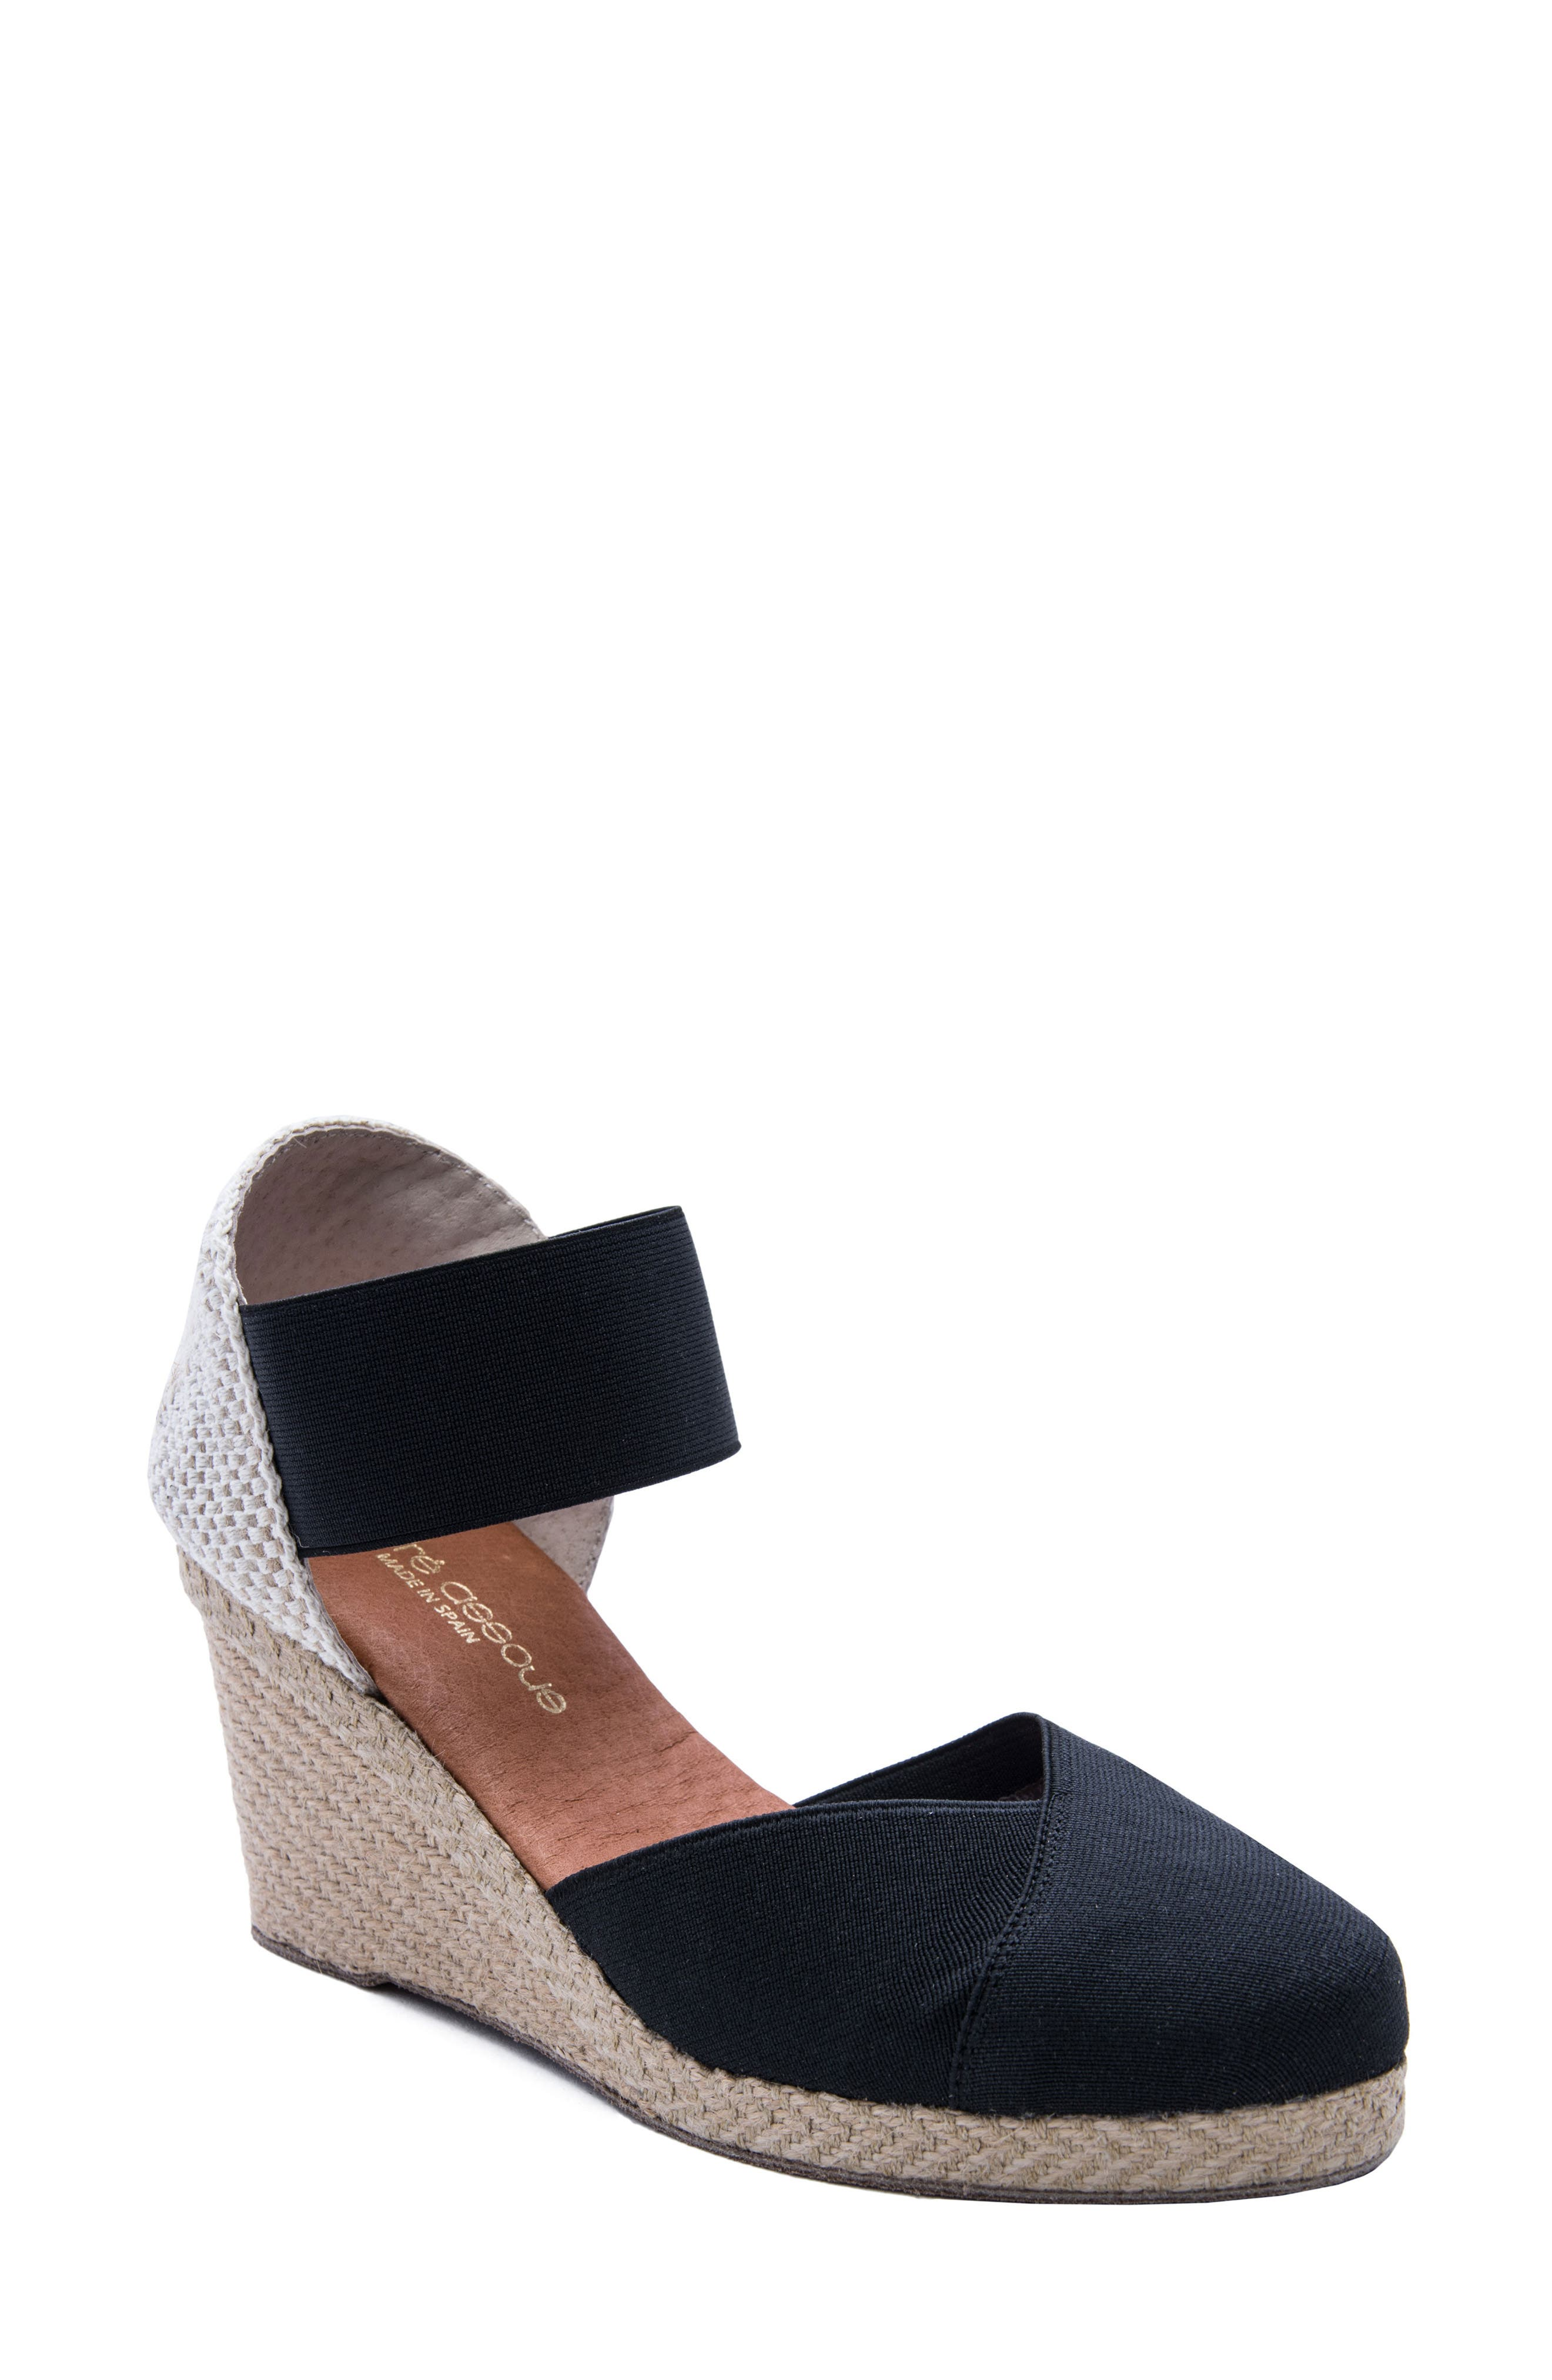 ANDRE ASSOUS Women'S Anouka Mid Wedge Espadrilles in Black Fabric